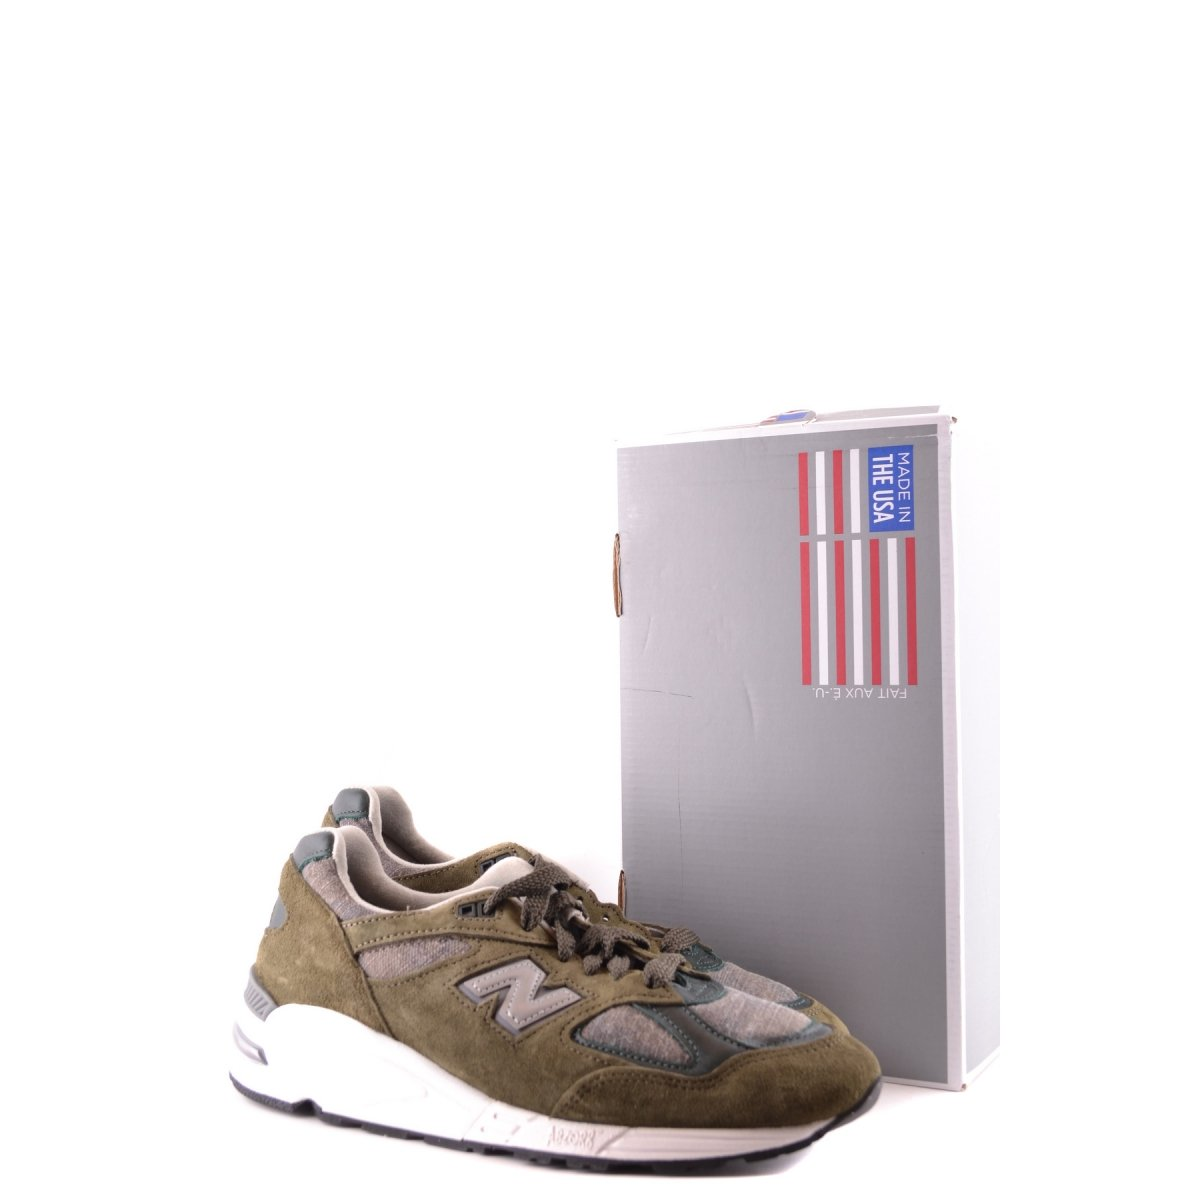 New Balance Uomo M990 Made In Usa Dsu2 Sneakers Verde Militare Camoscio-Tessuto Fall-Winter 2016 StyfBzPLxs